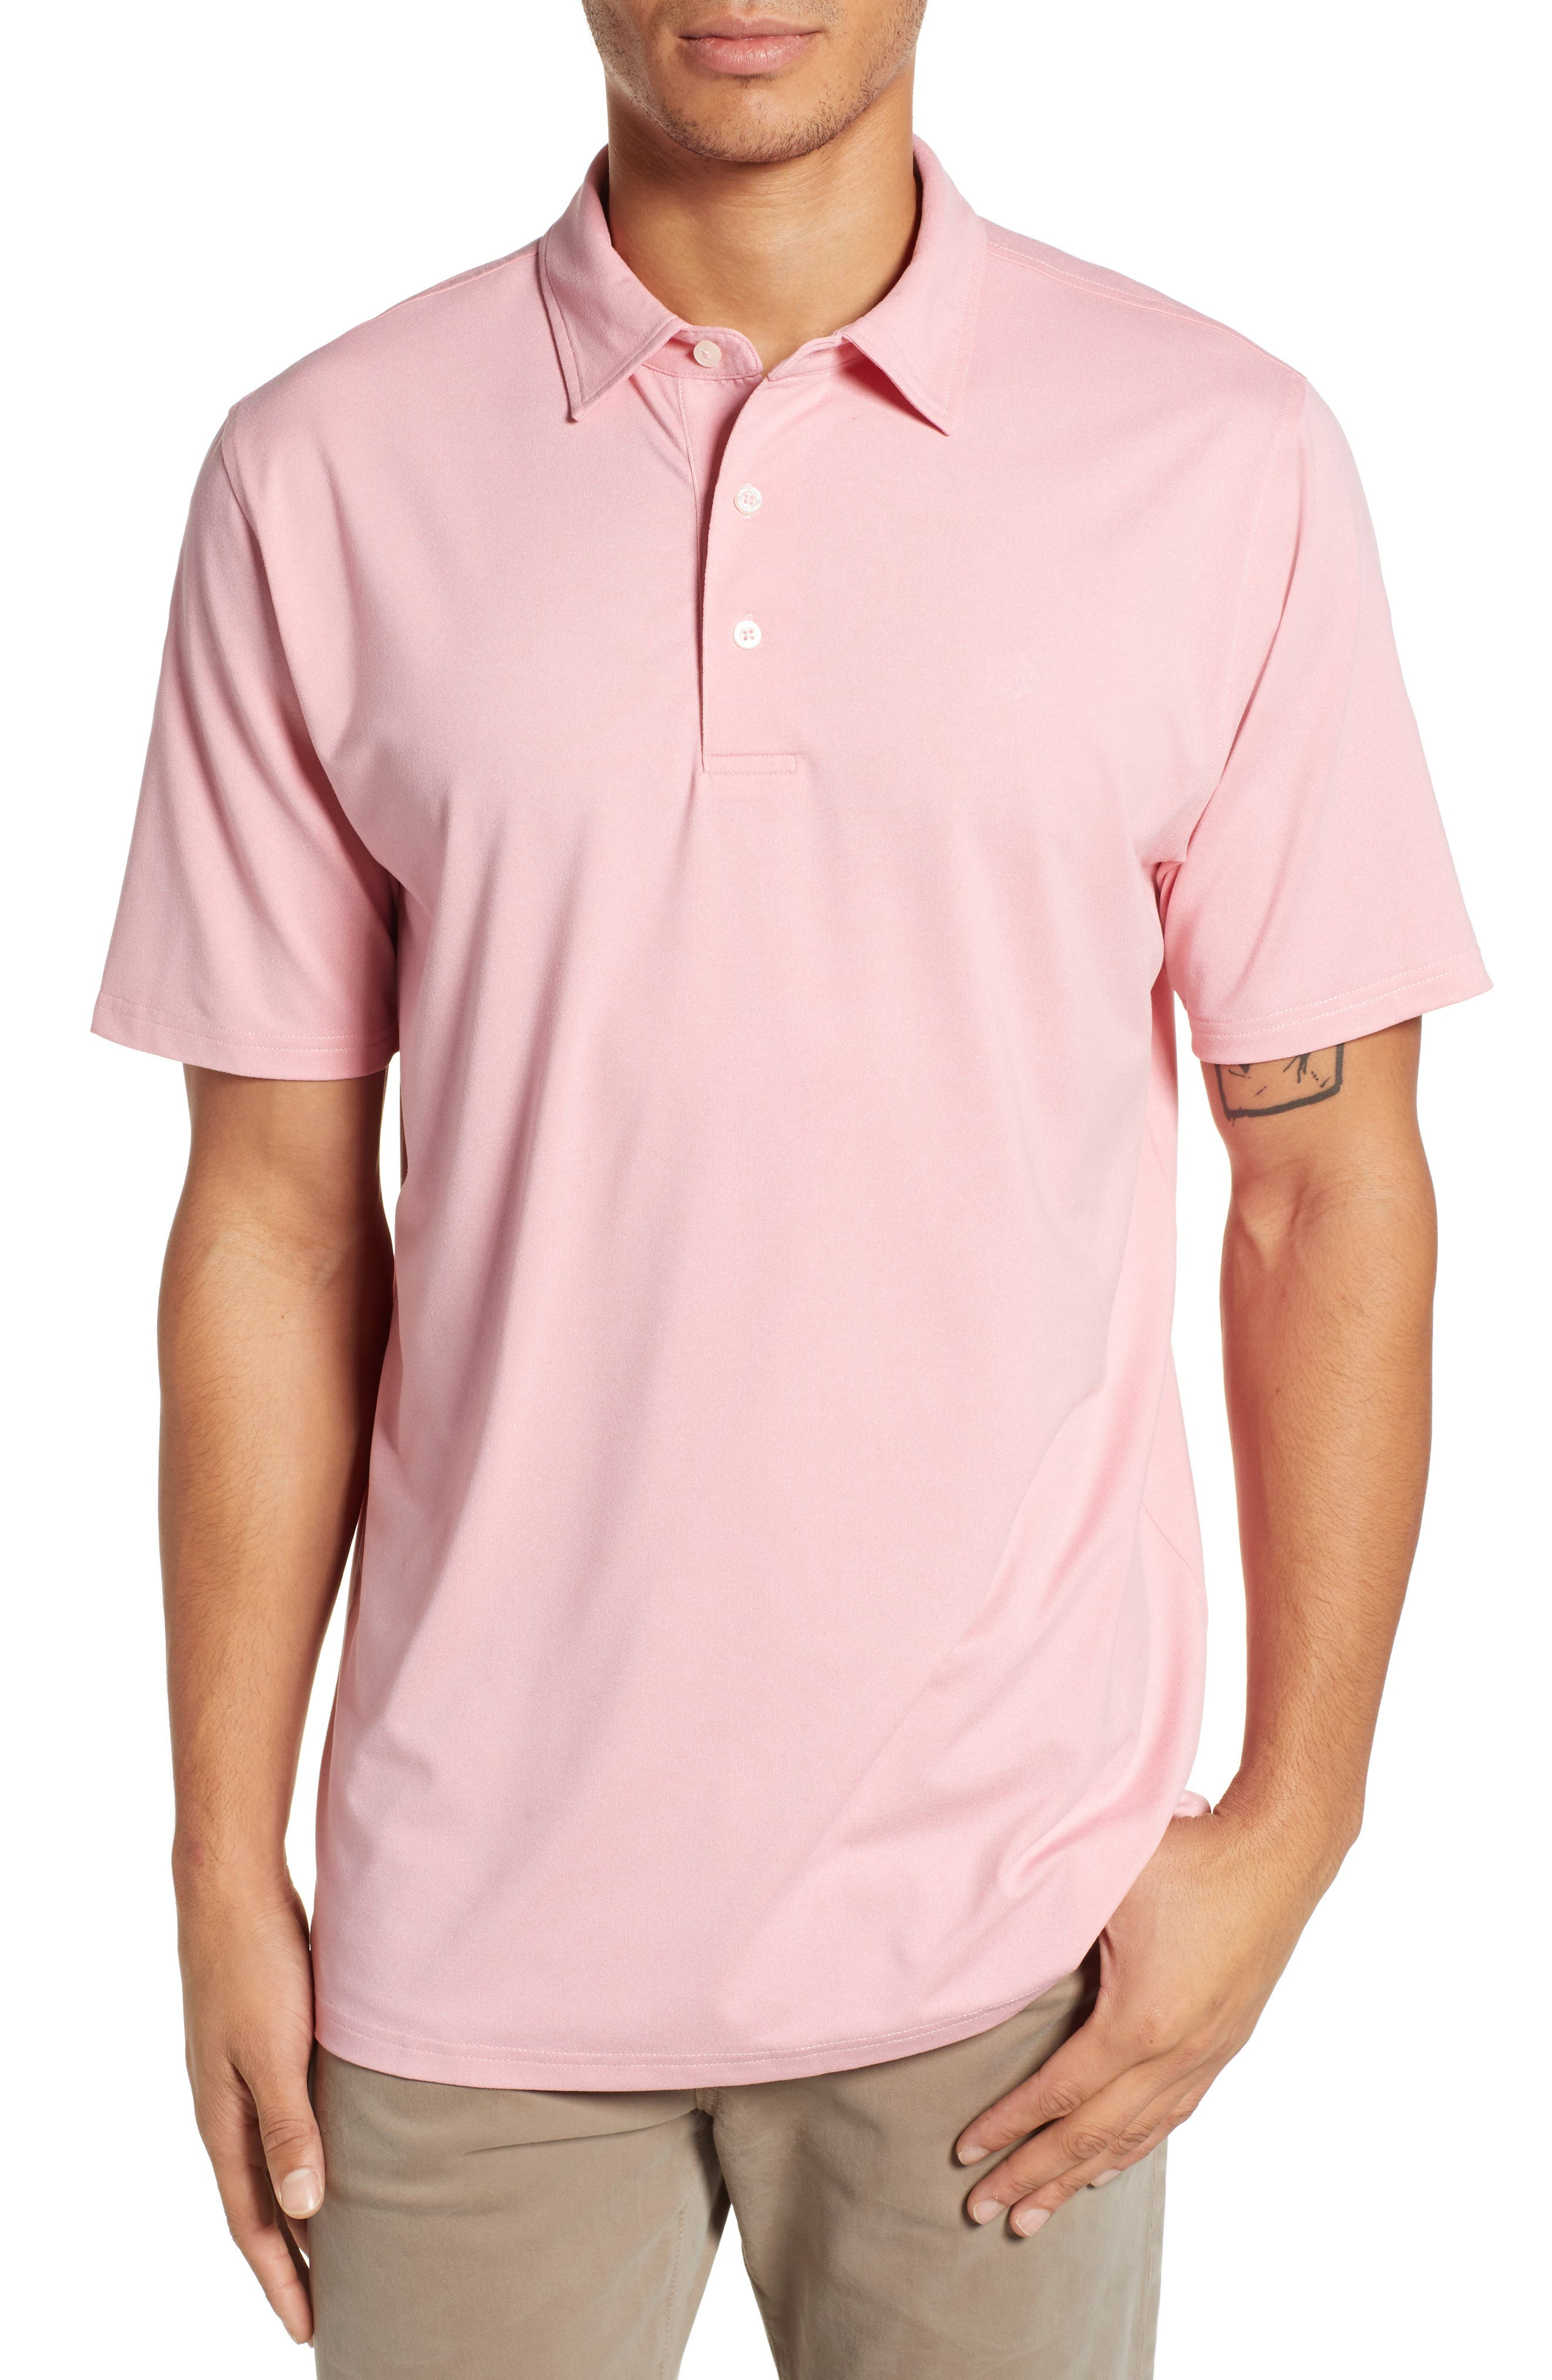 Southern Tide Driver Performance Jersey Polo, Pink